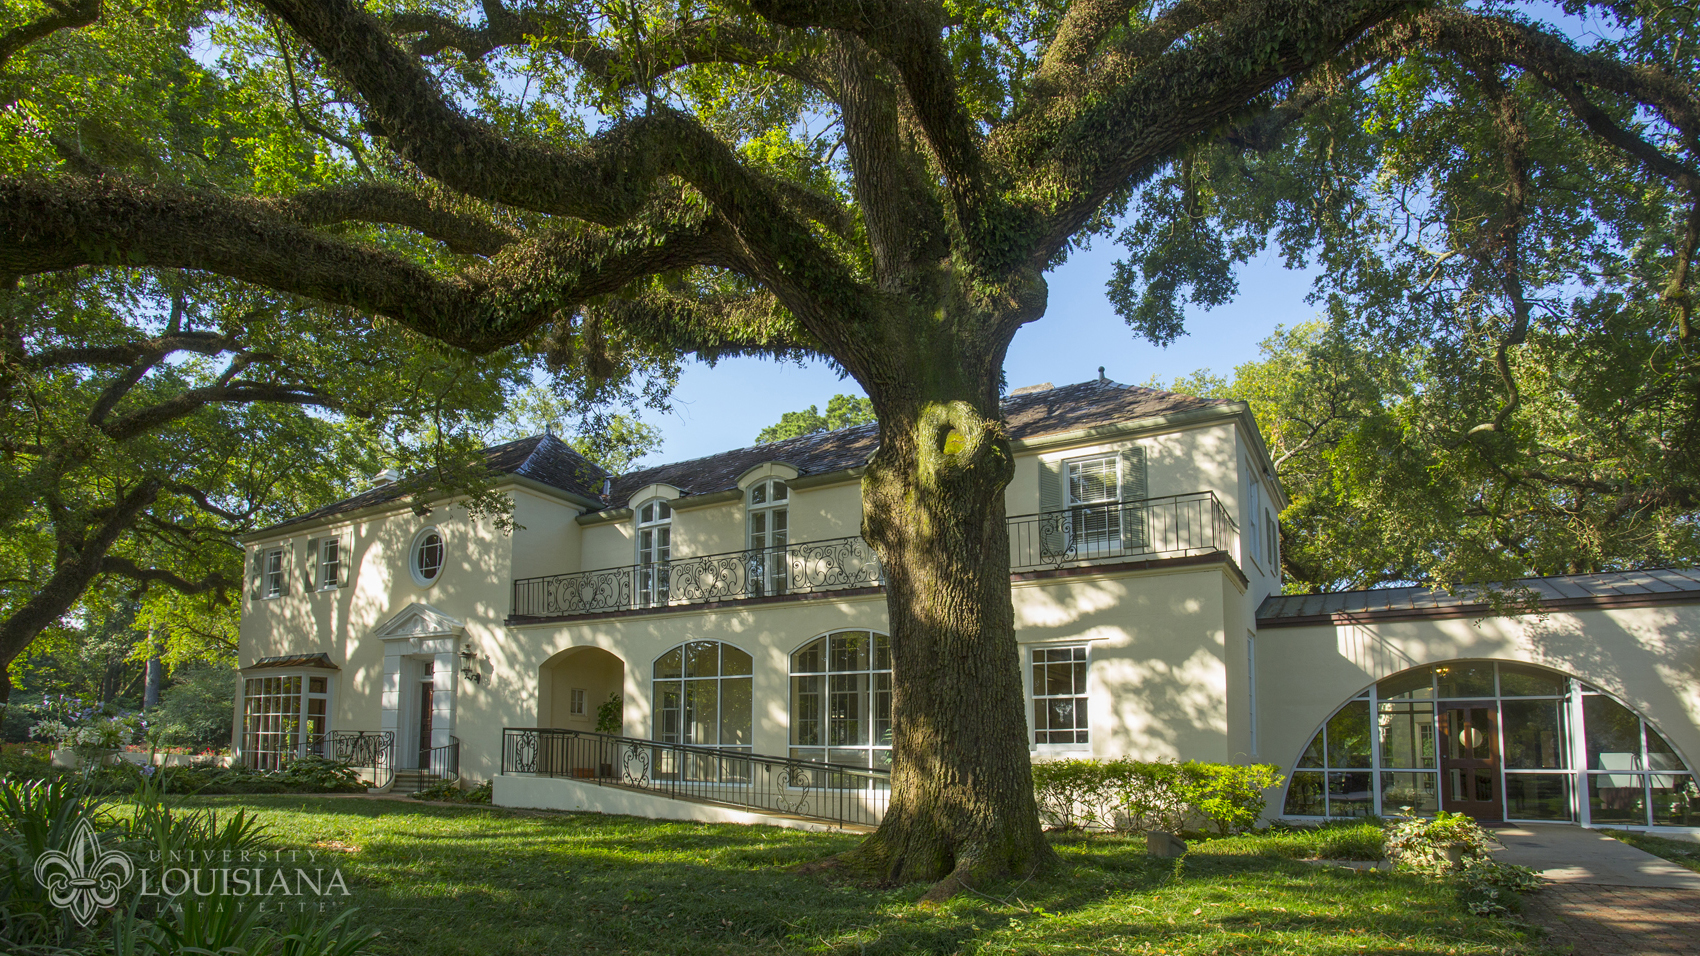 Photo of the University of Louisiana at Lafayette Alumni Center shaded by our mighty live oaks.